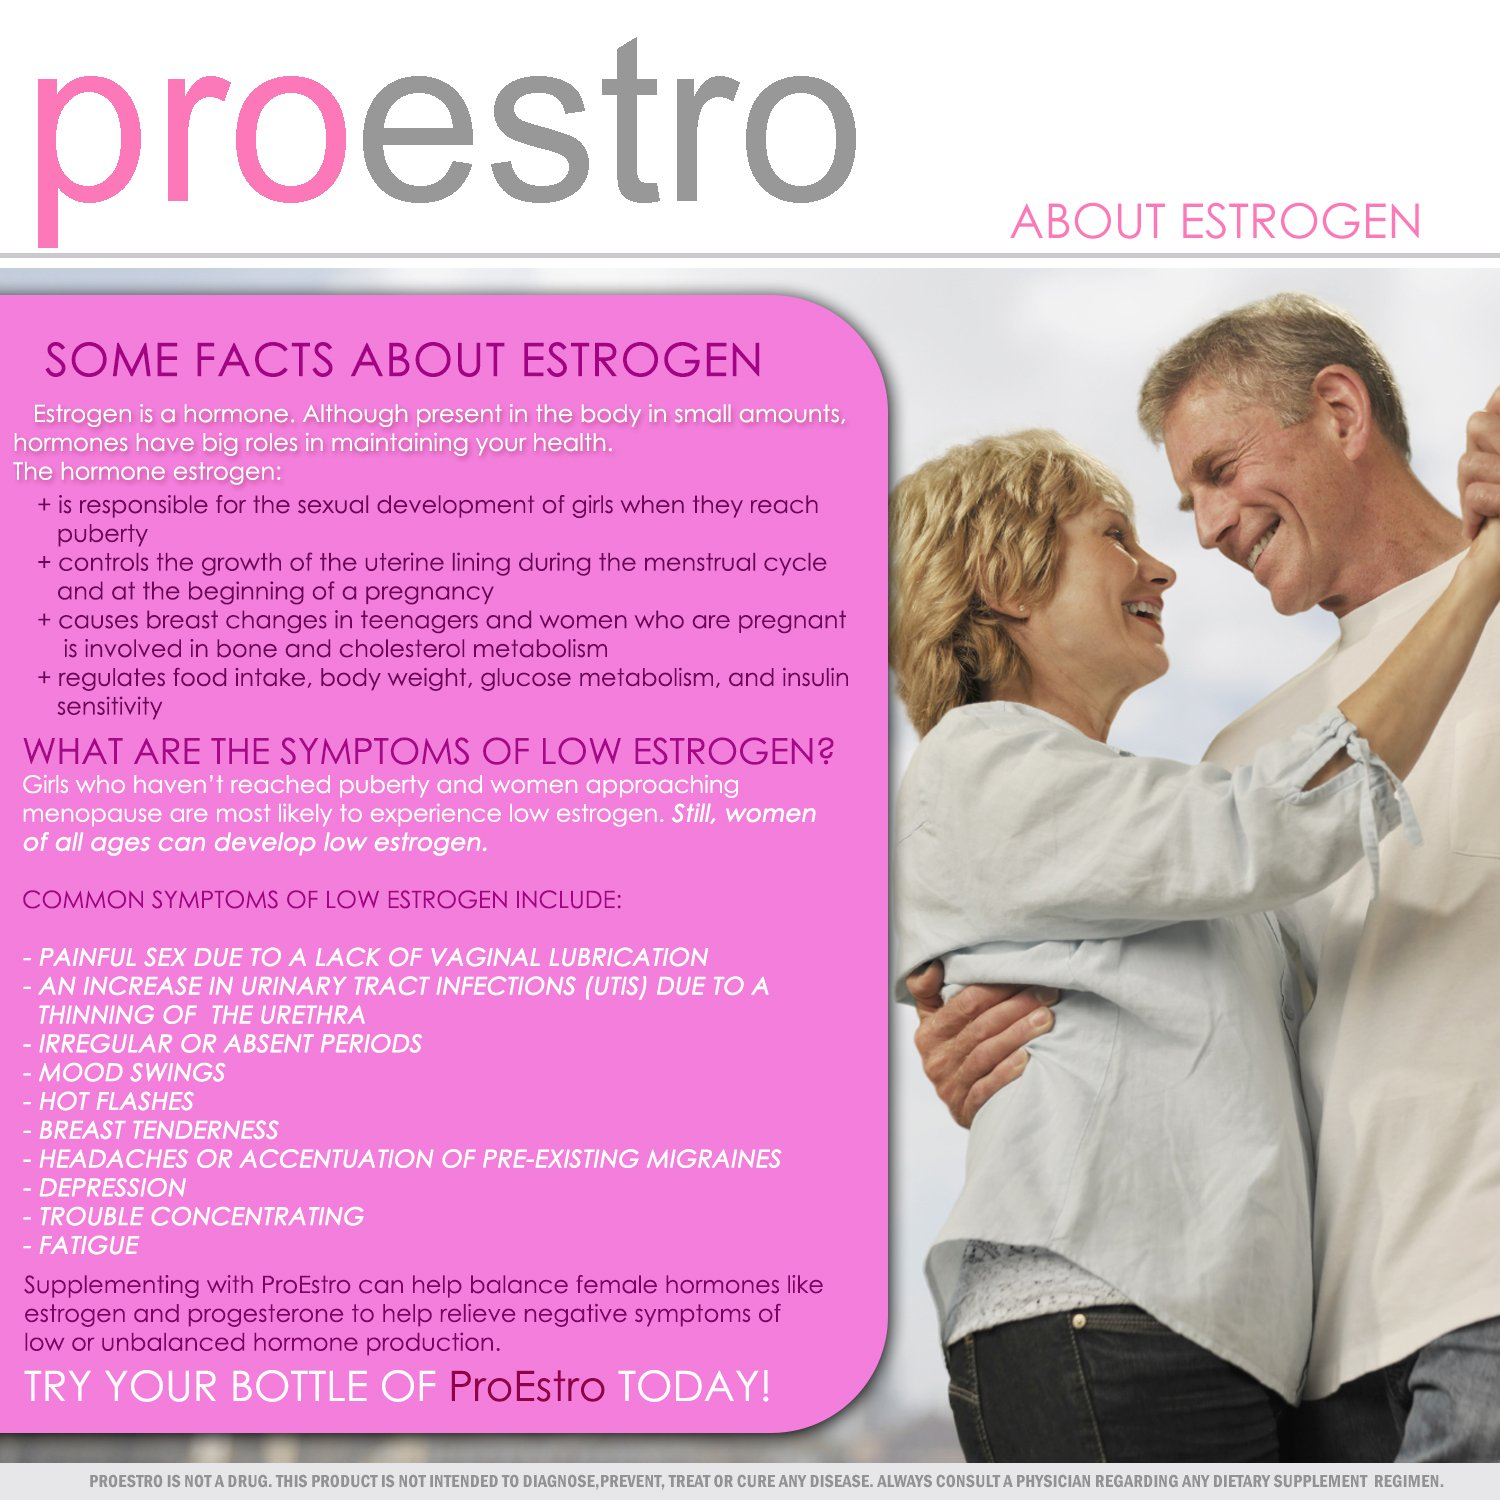 Products containing estrogen - a hormone of female youth